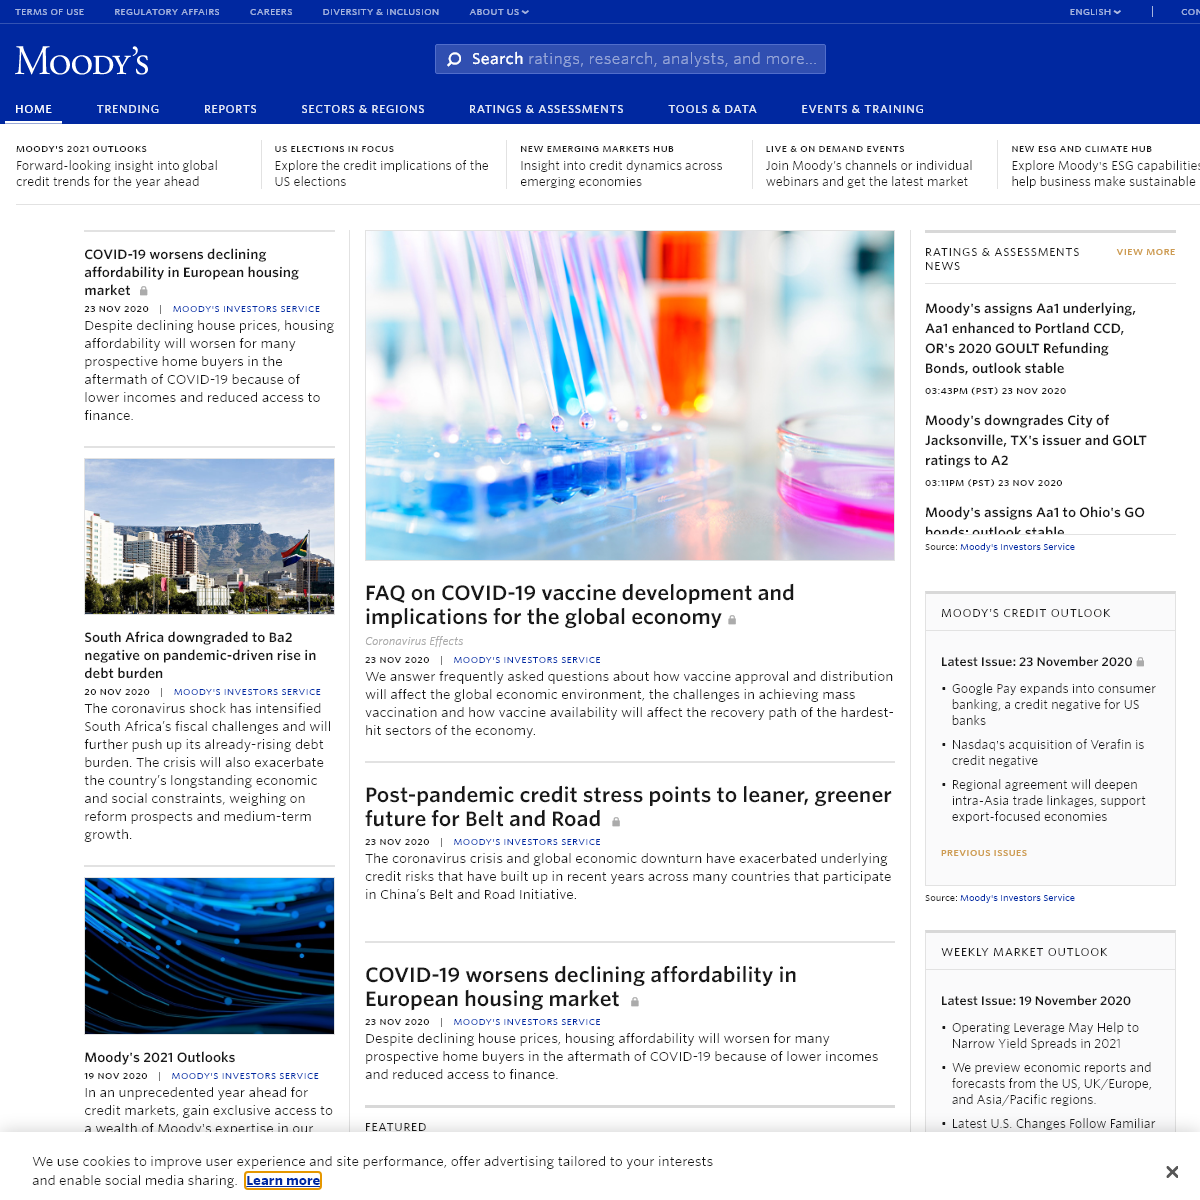 Moody`s - credit ratings, research, tools and analysis for the global capital markets